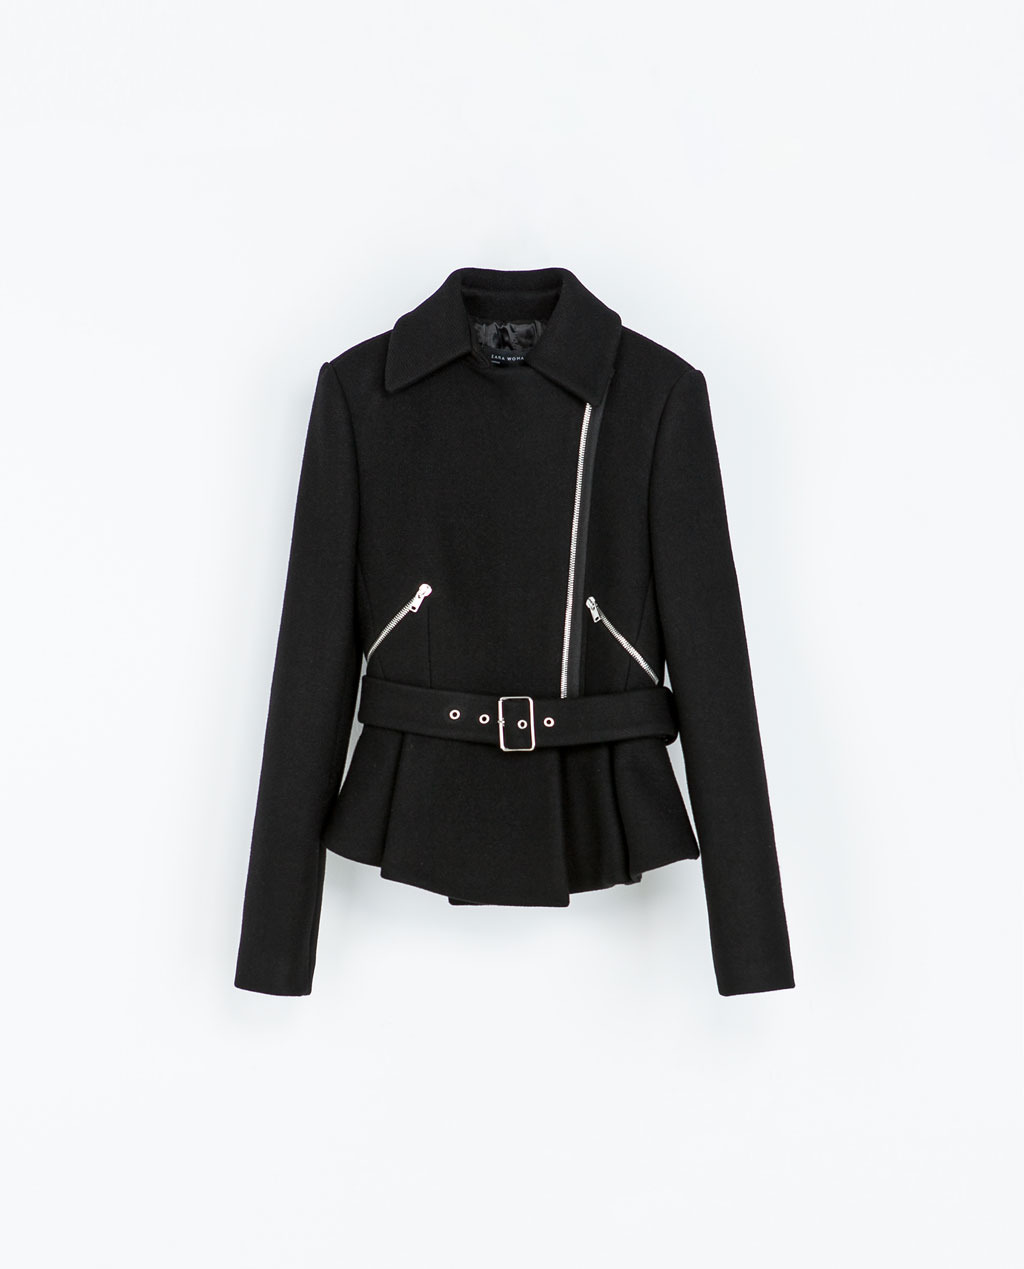 Zipped Jacket - pattern: plain; style: biker; collar: asymmetric biker; predominant colour: black; occasions: casual, creative work; length: standard; fit: tailored/fitted; fibres: wool - mix; waist detail: belted waist/tie at waist/drawstring; sleeve length: long sleeve; sleeve style: standard; collar break: high/illusion of break when open; pattern type: fabric; texture group: woven light midweight; season: a/w 2013; wardrobe: basic